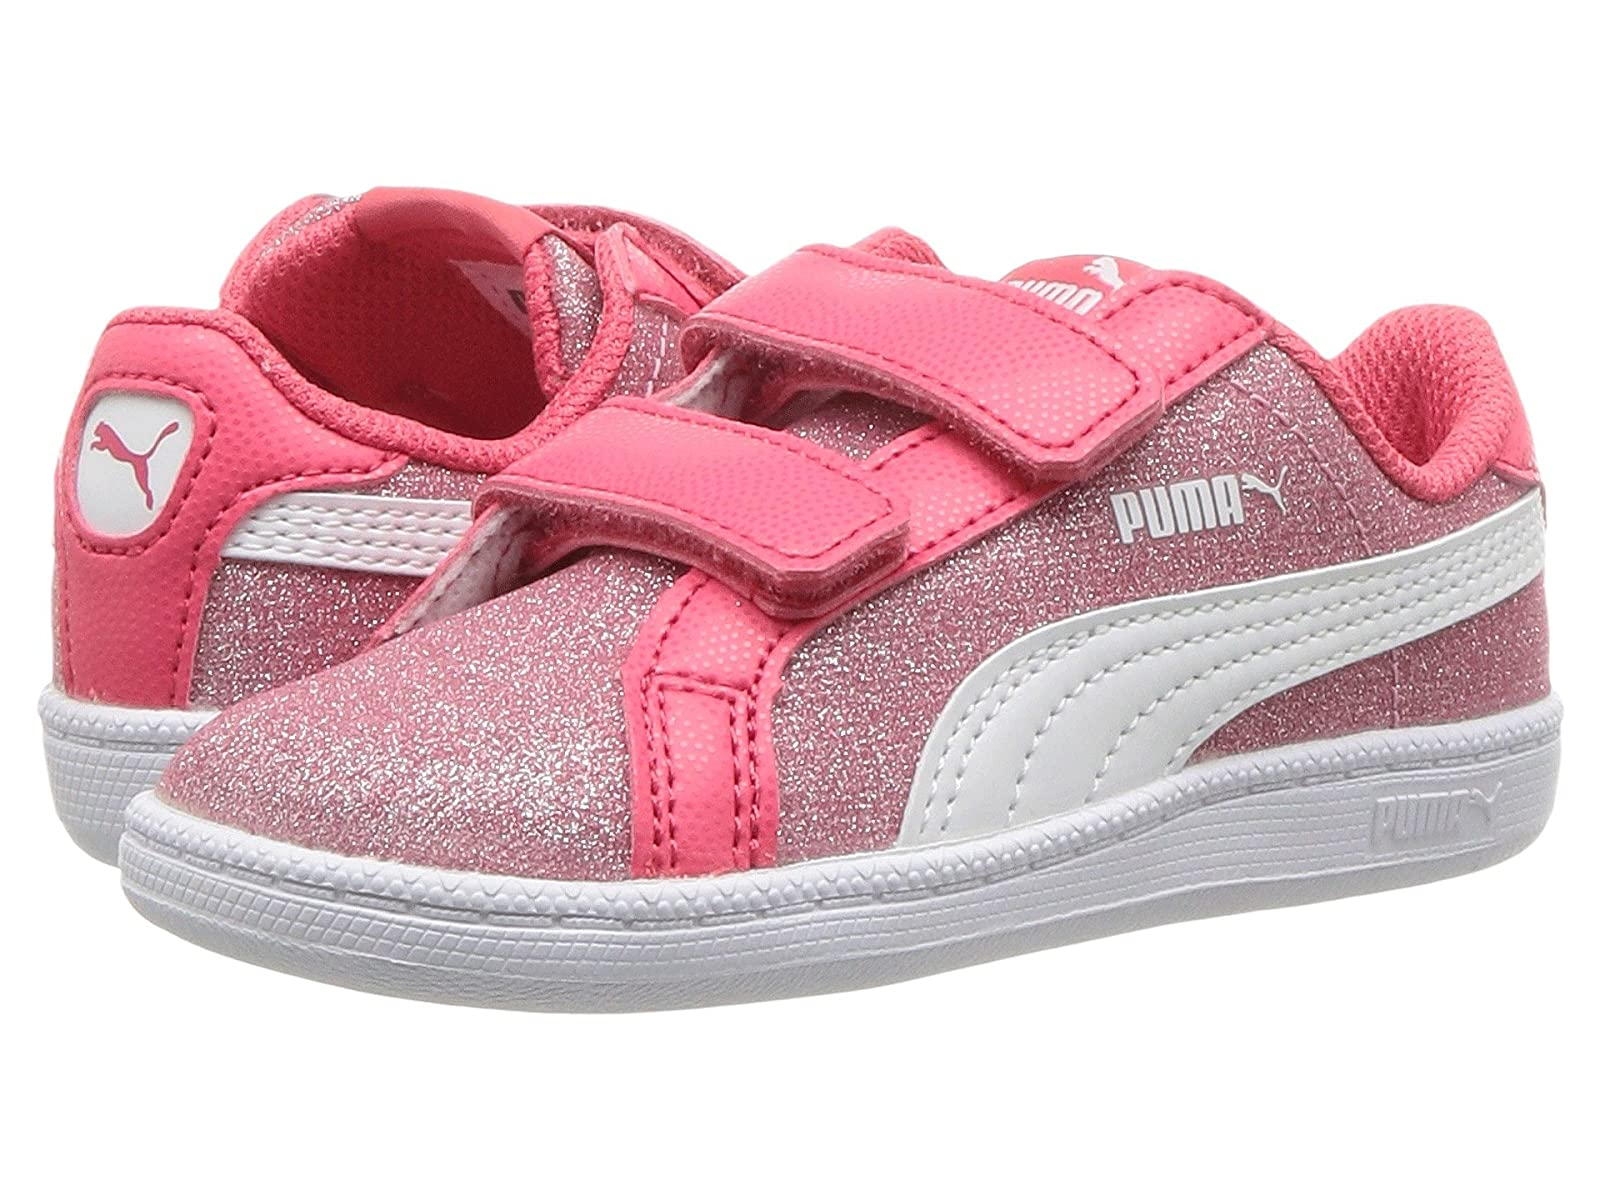 Puma Kids Smash Glitz Glamm V (Toddler)Atmospheric grades have affordable shoes